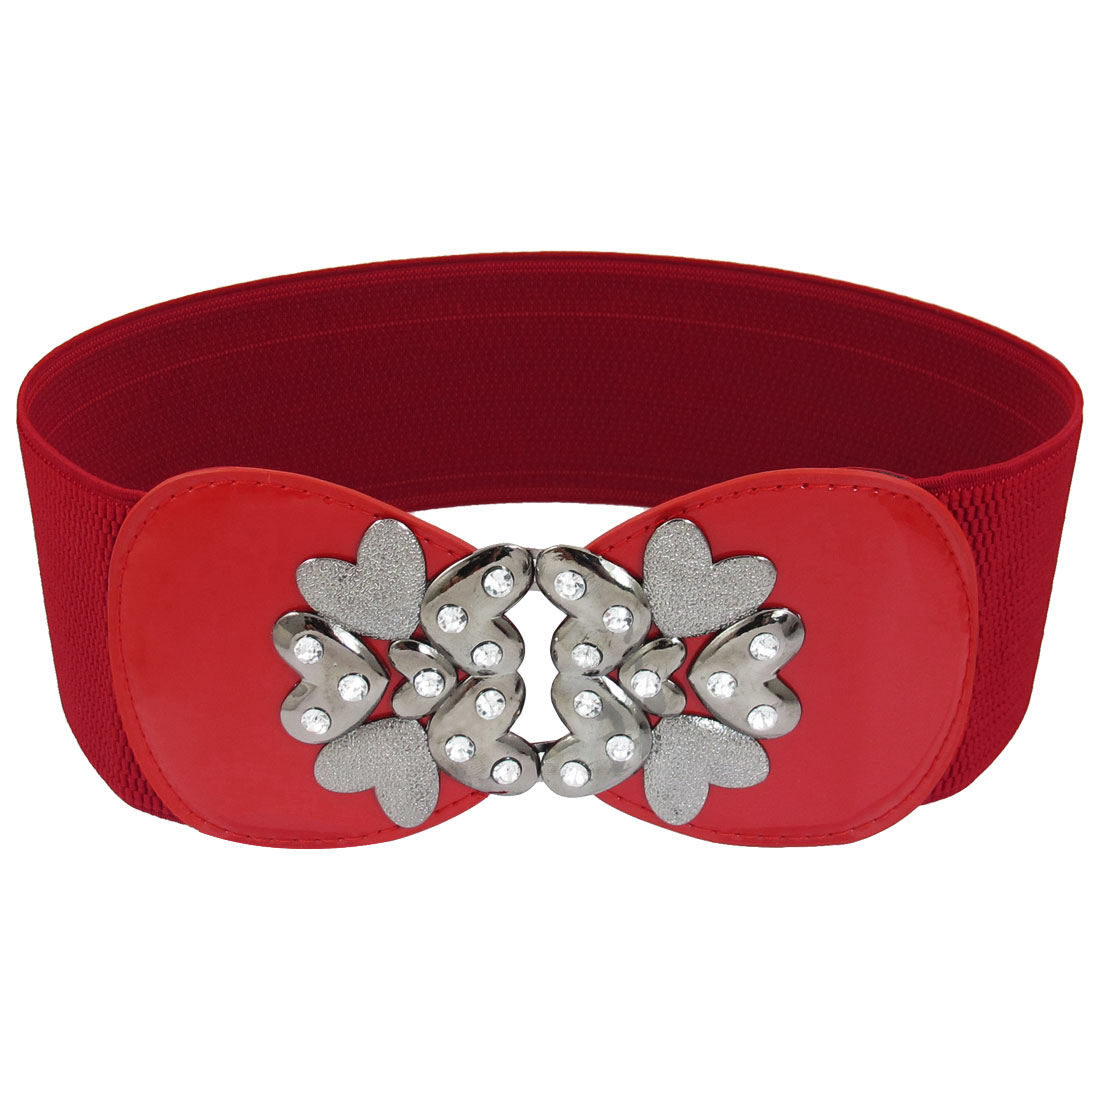 Red Flower Shaped Metal Interlocking Buckle Waistband for Ladies